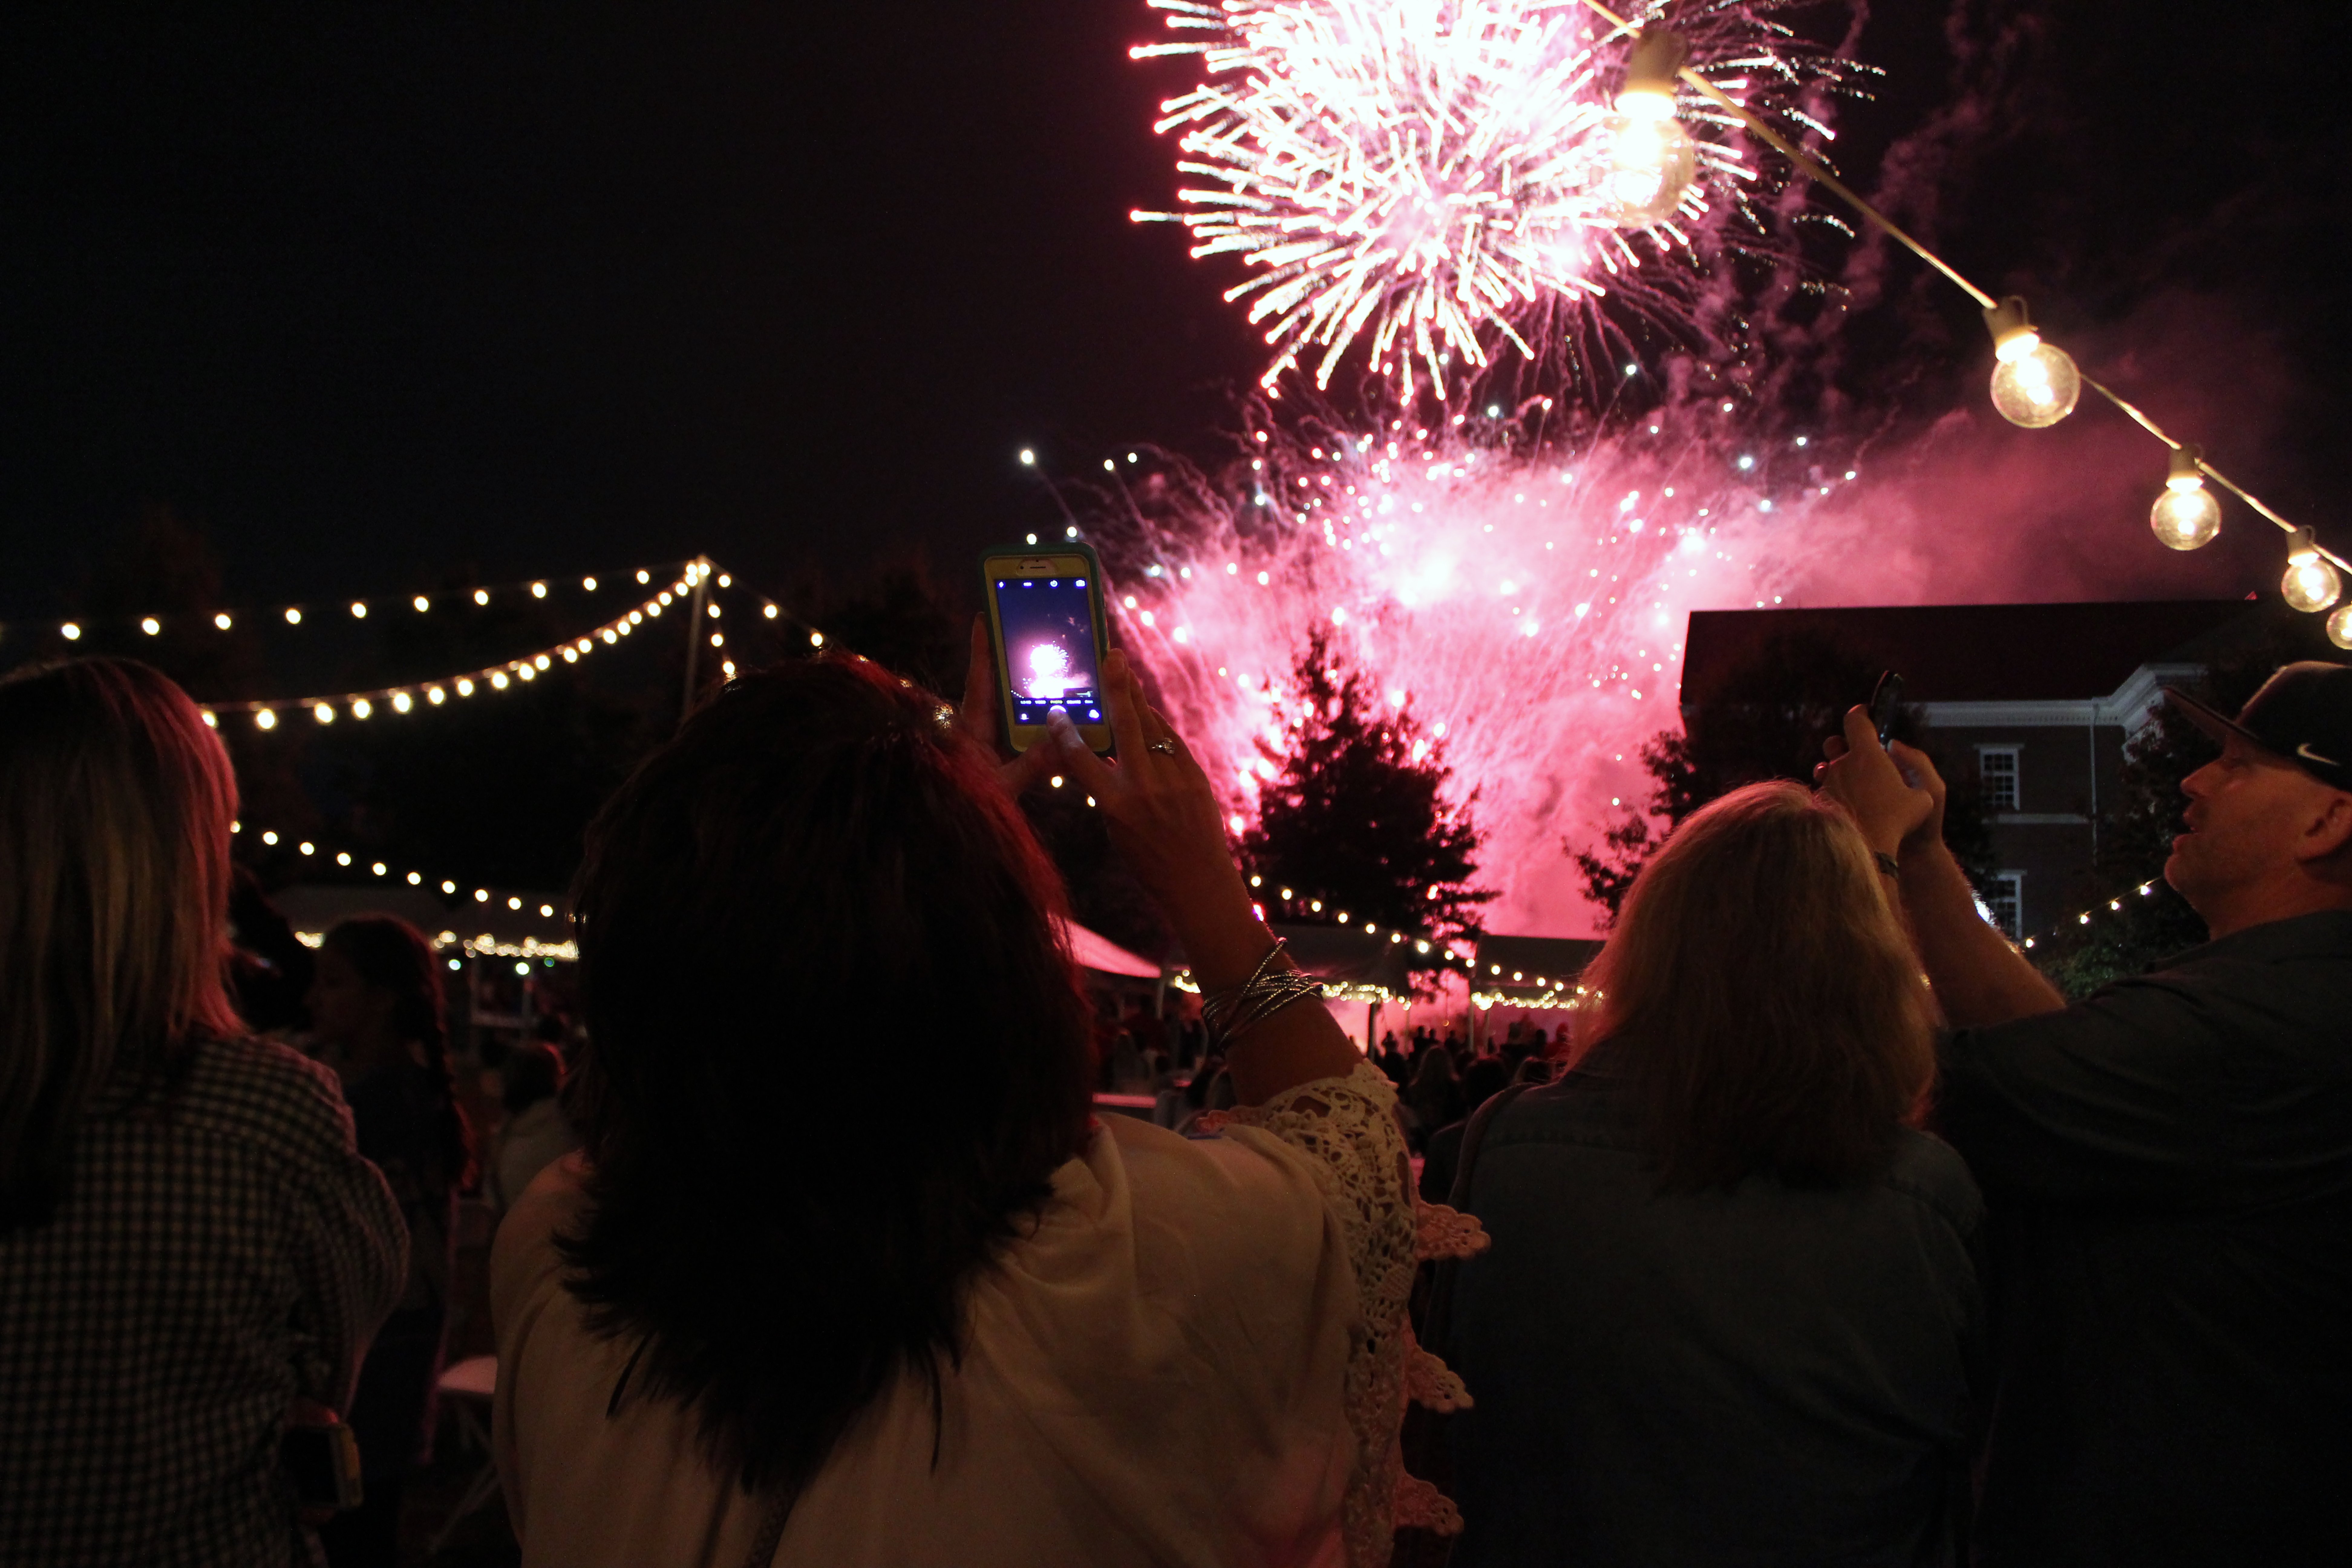 Parents, siblings, and students take snapshots of the dazzling fireworks during the Union Night event on Family Weekend.